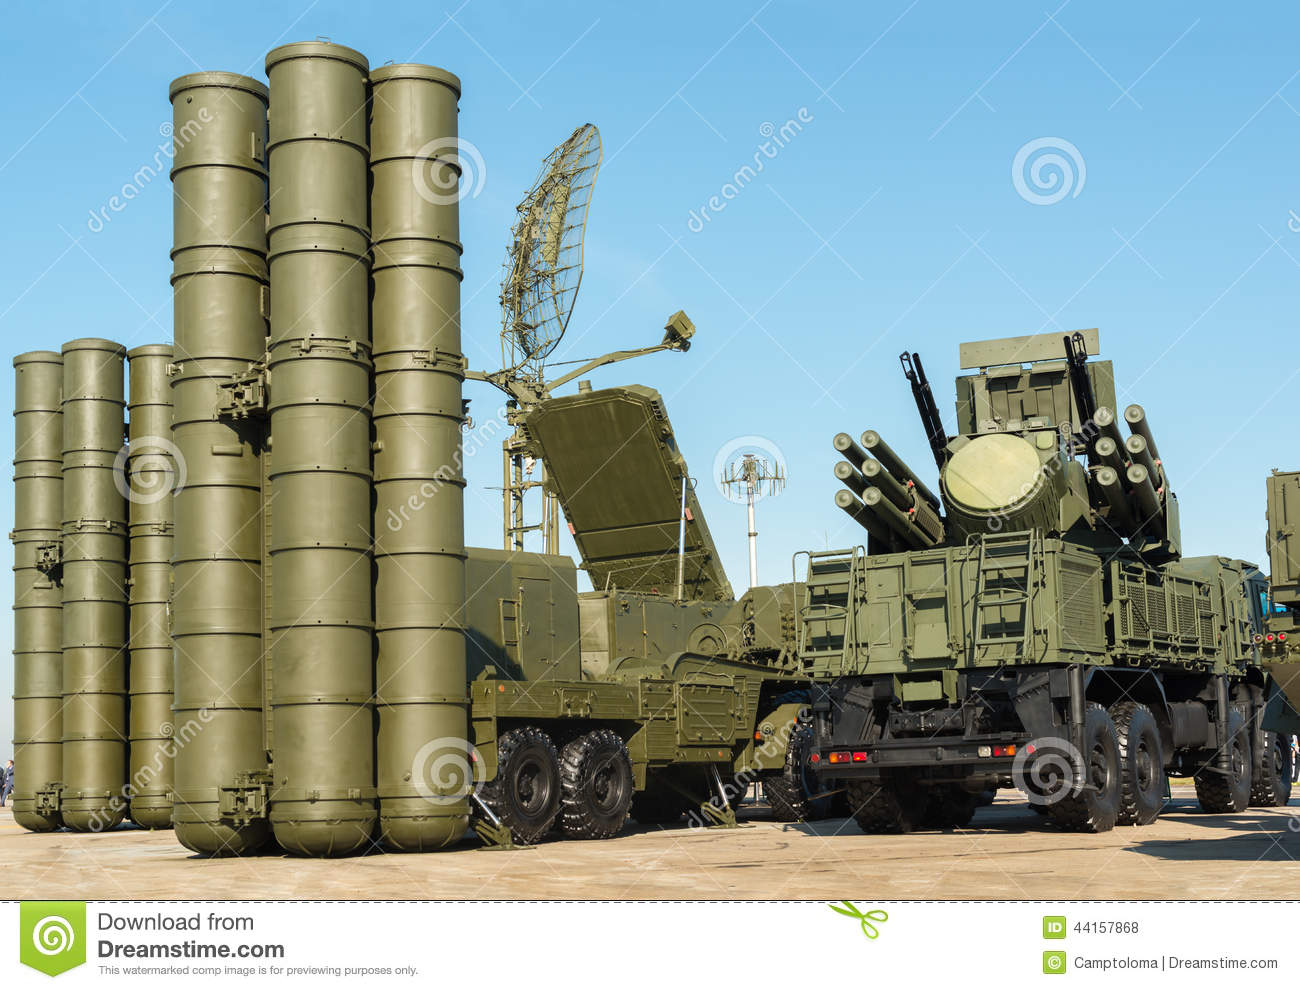 ... BMPT, SMERCH, s-300, pantsir-s1Exhibition in ZHUKOVSKY, RUSSIA 2014